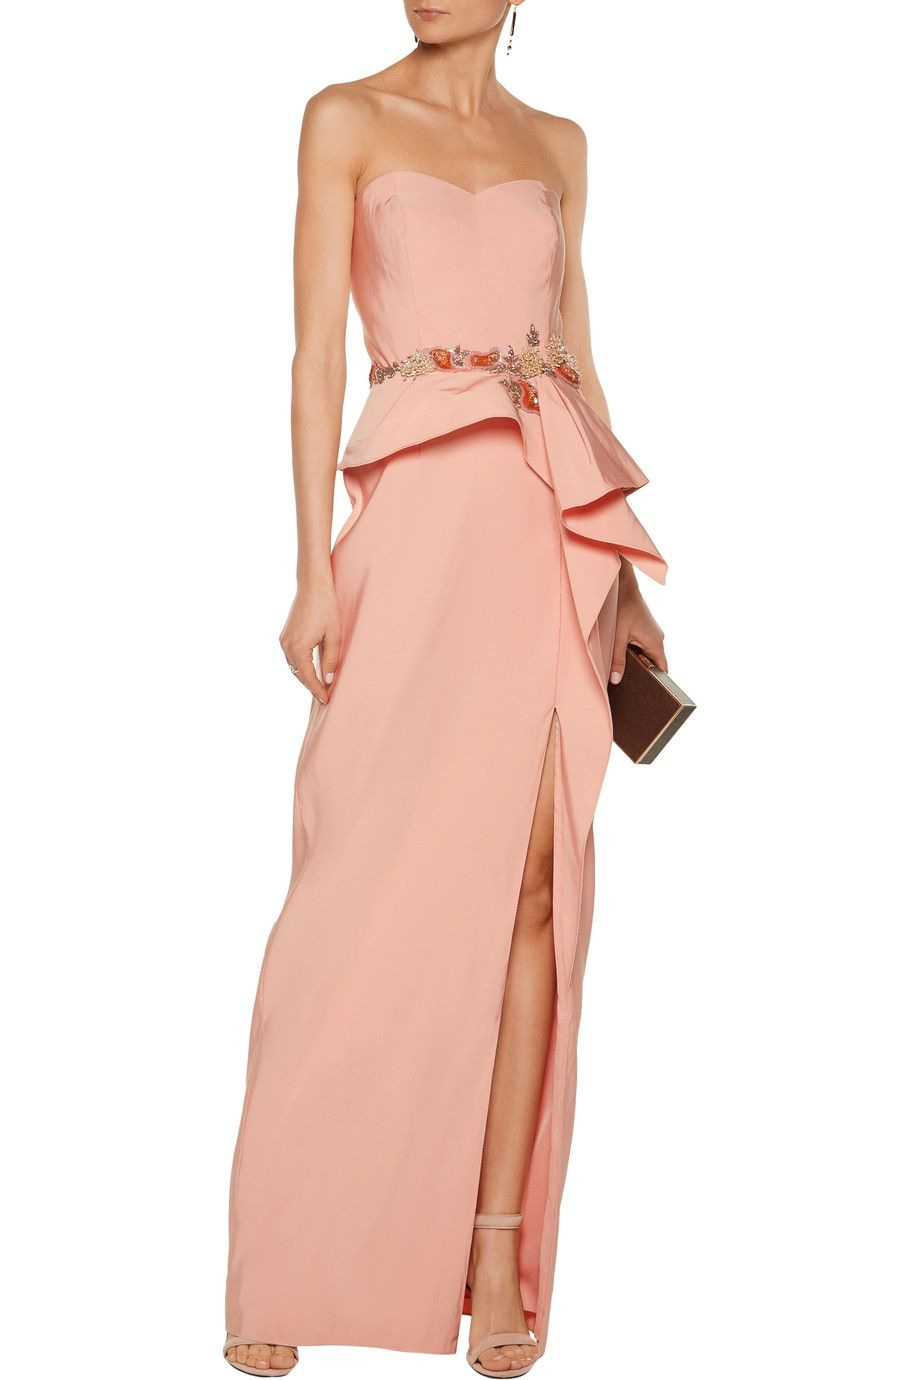 Shop on-sale Marchesa Notte Ruffled embellished crepe gown. Browse other  discount designer Dresses